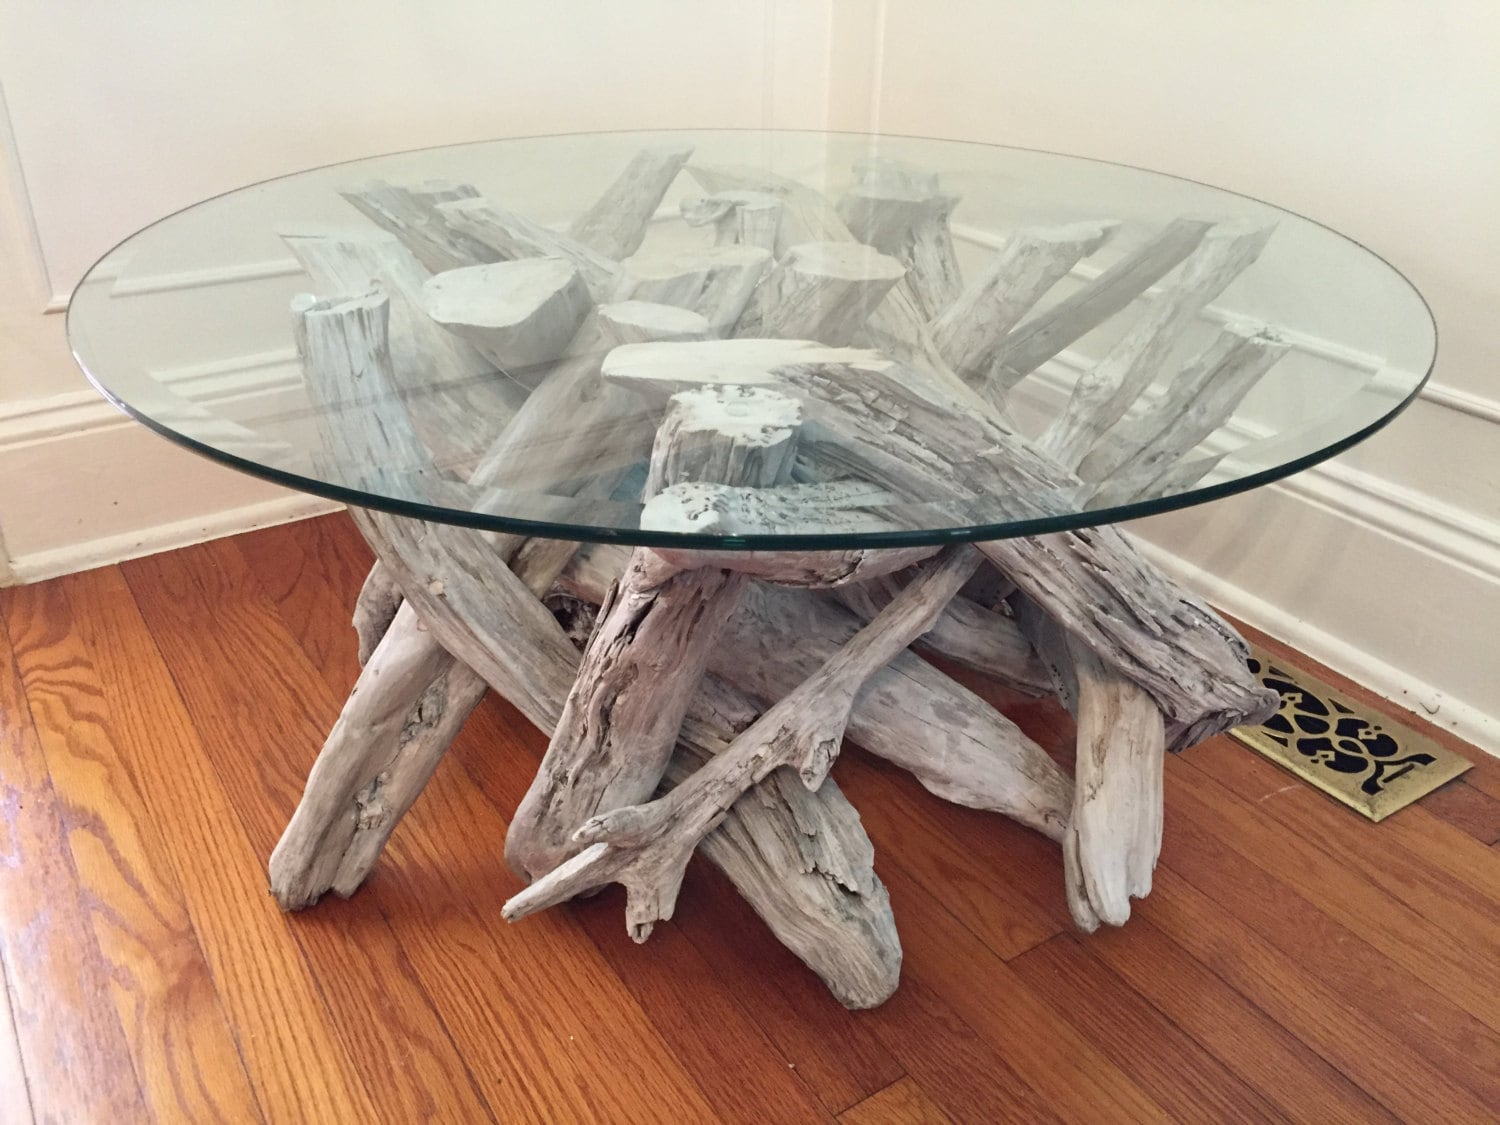 driftwood coffee table style 3 handmade from reclaimed